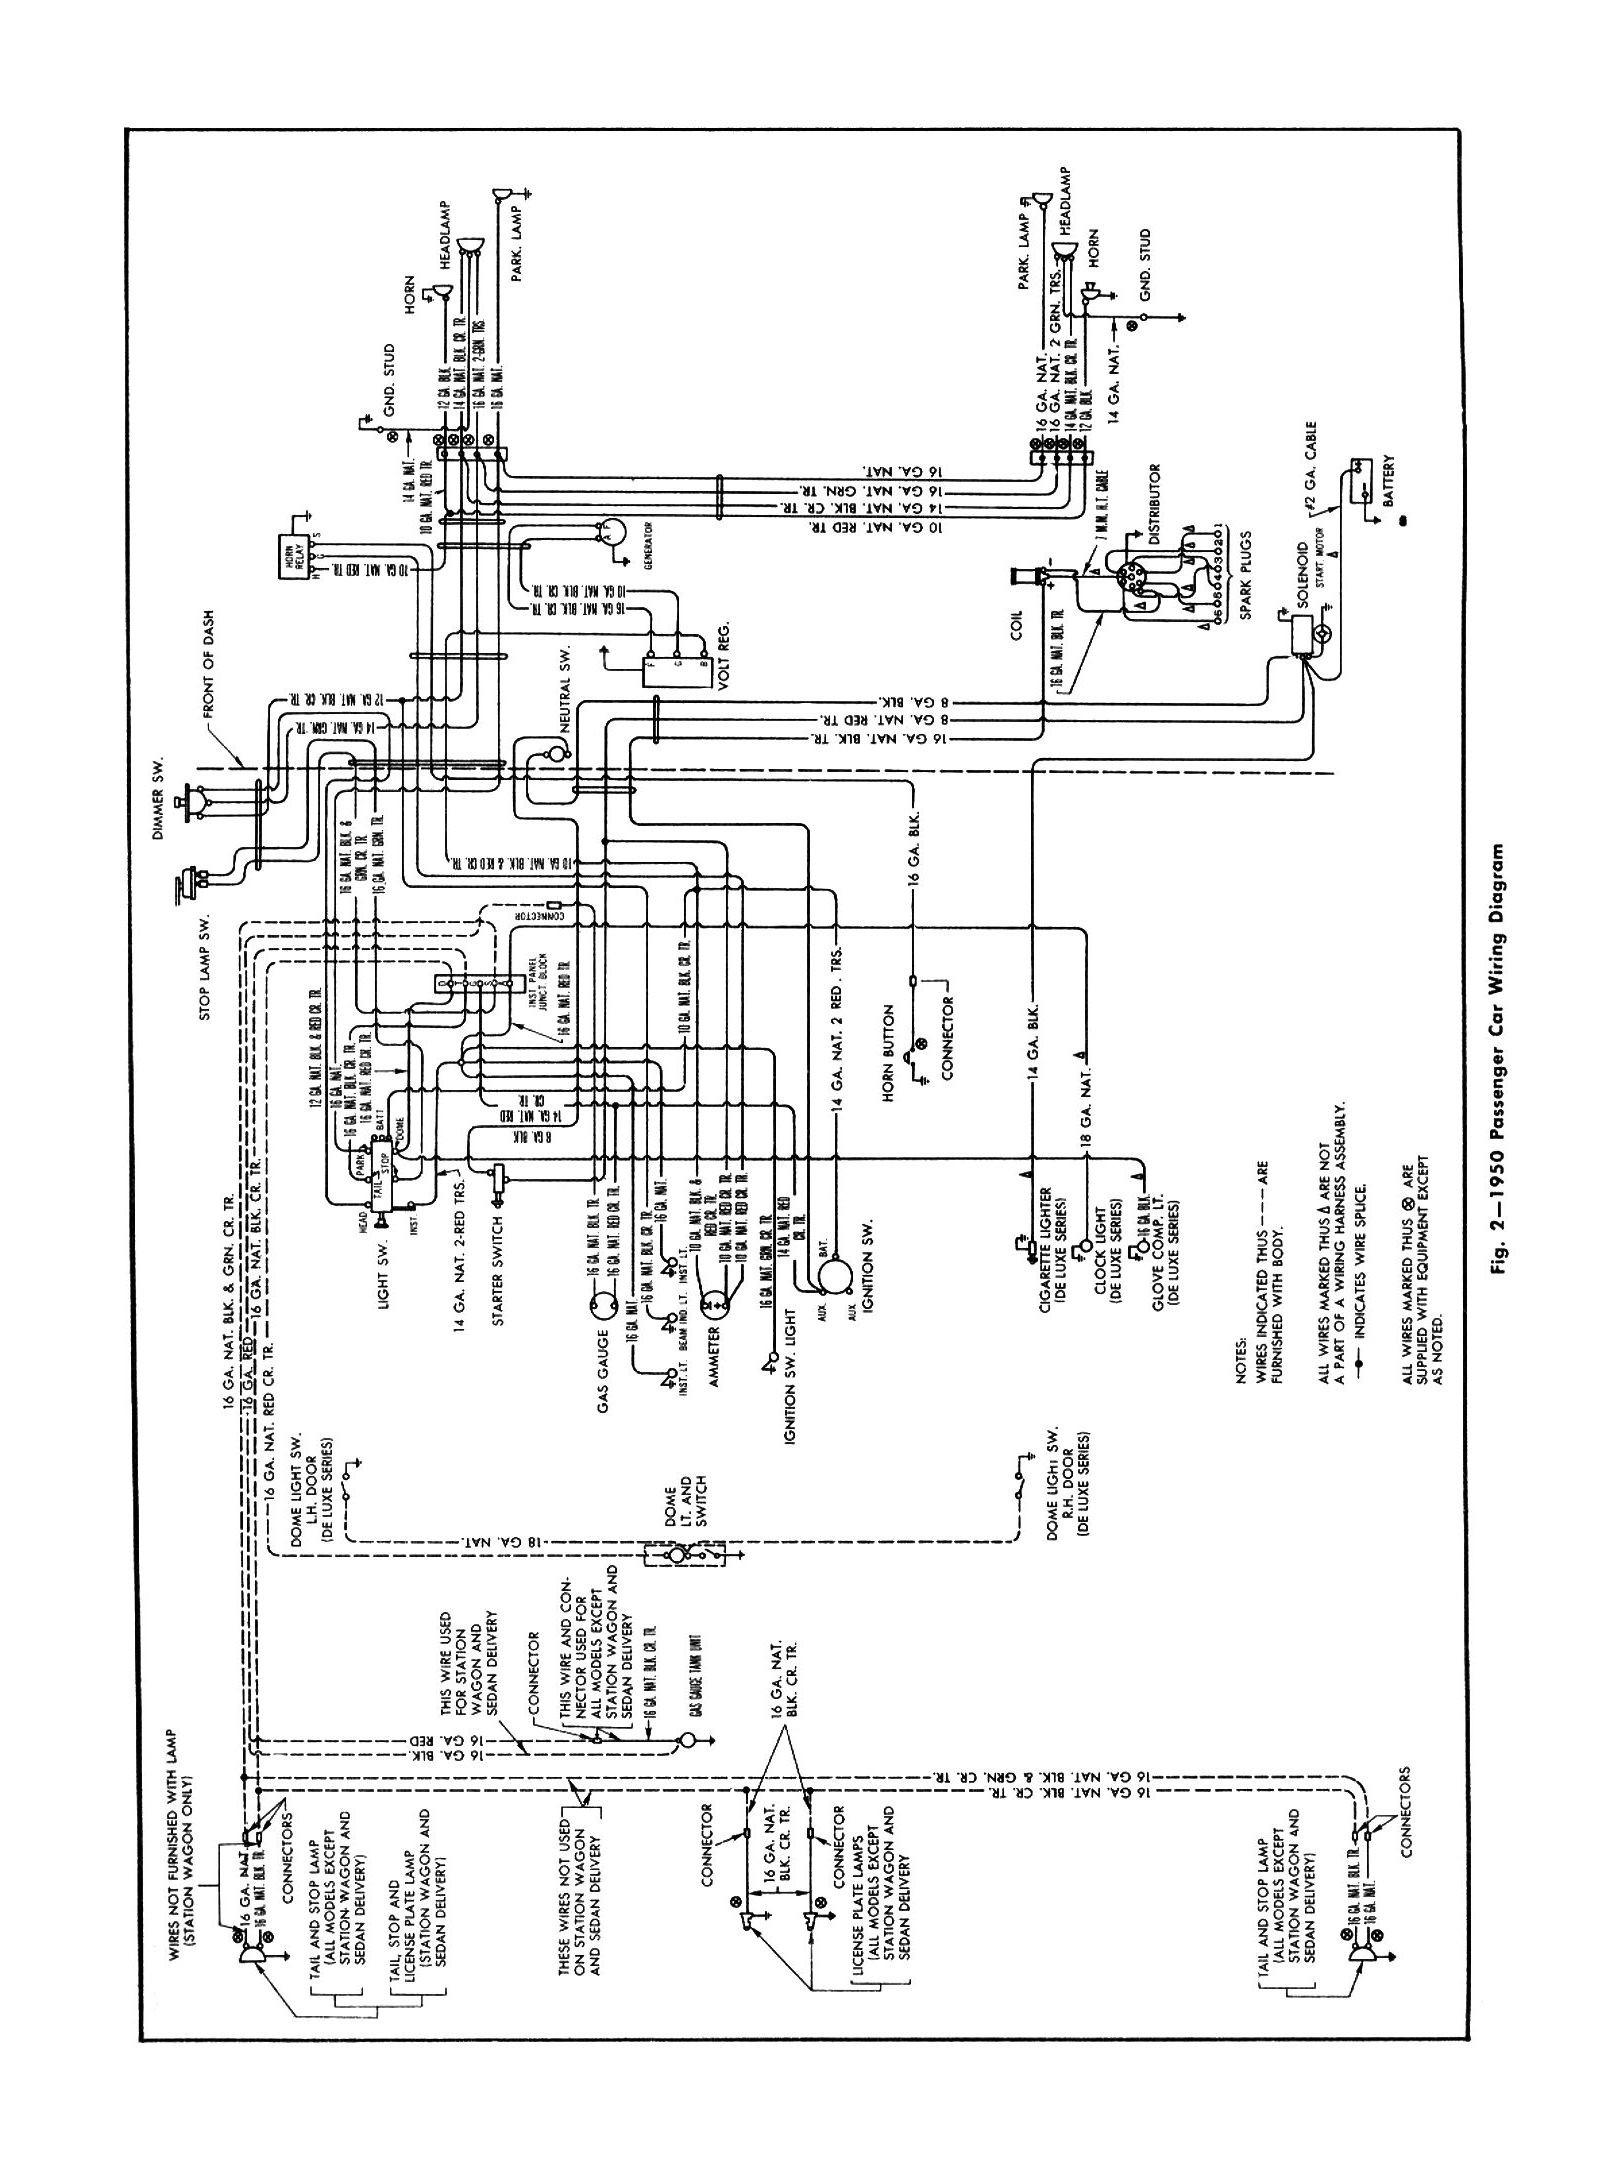 1949 Lincoln Wiring Harness - Owner Manual & Wiring Diagram on universal heater core, universal equipment harness, universal battery, universal steering column, universal fuse box, universal miller by sperian harness, universal radio harness, universal air filter, universal fuel rail, construction harness, lightweight safety harness, stihl universal harness, universal ignition module,